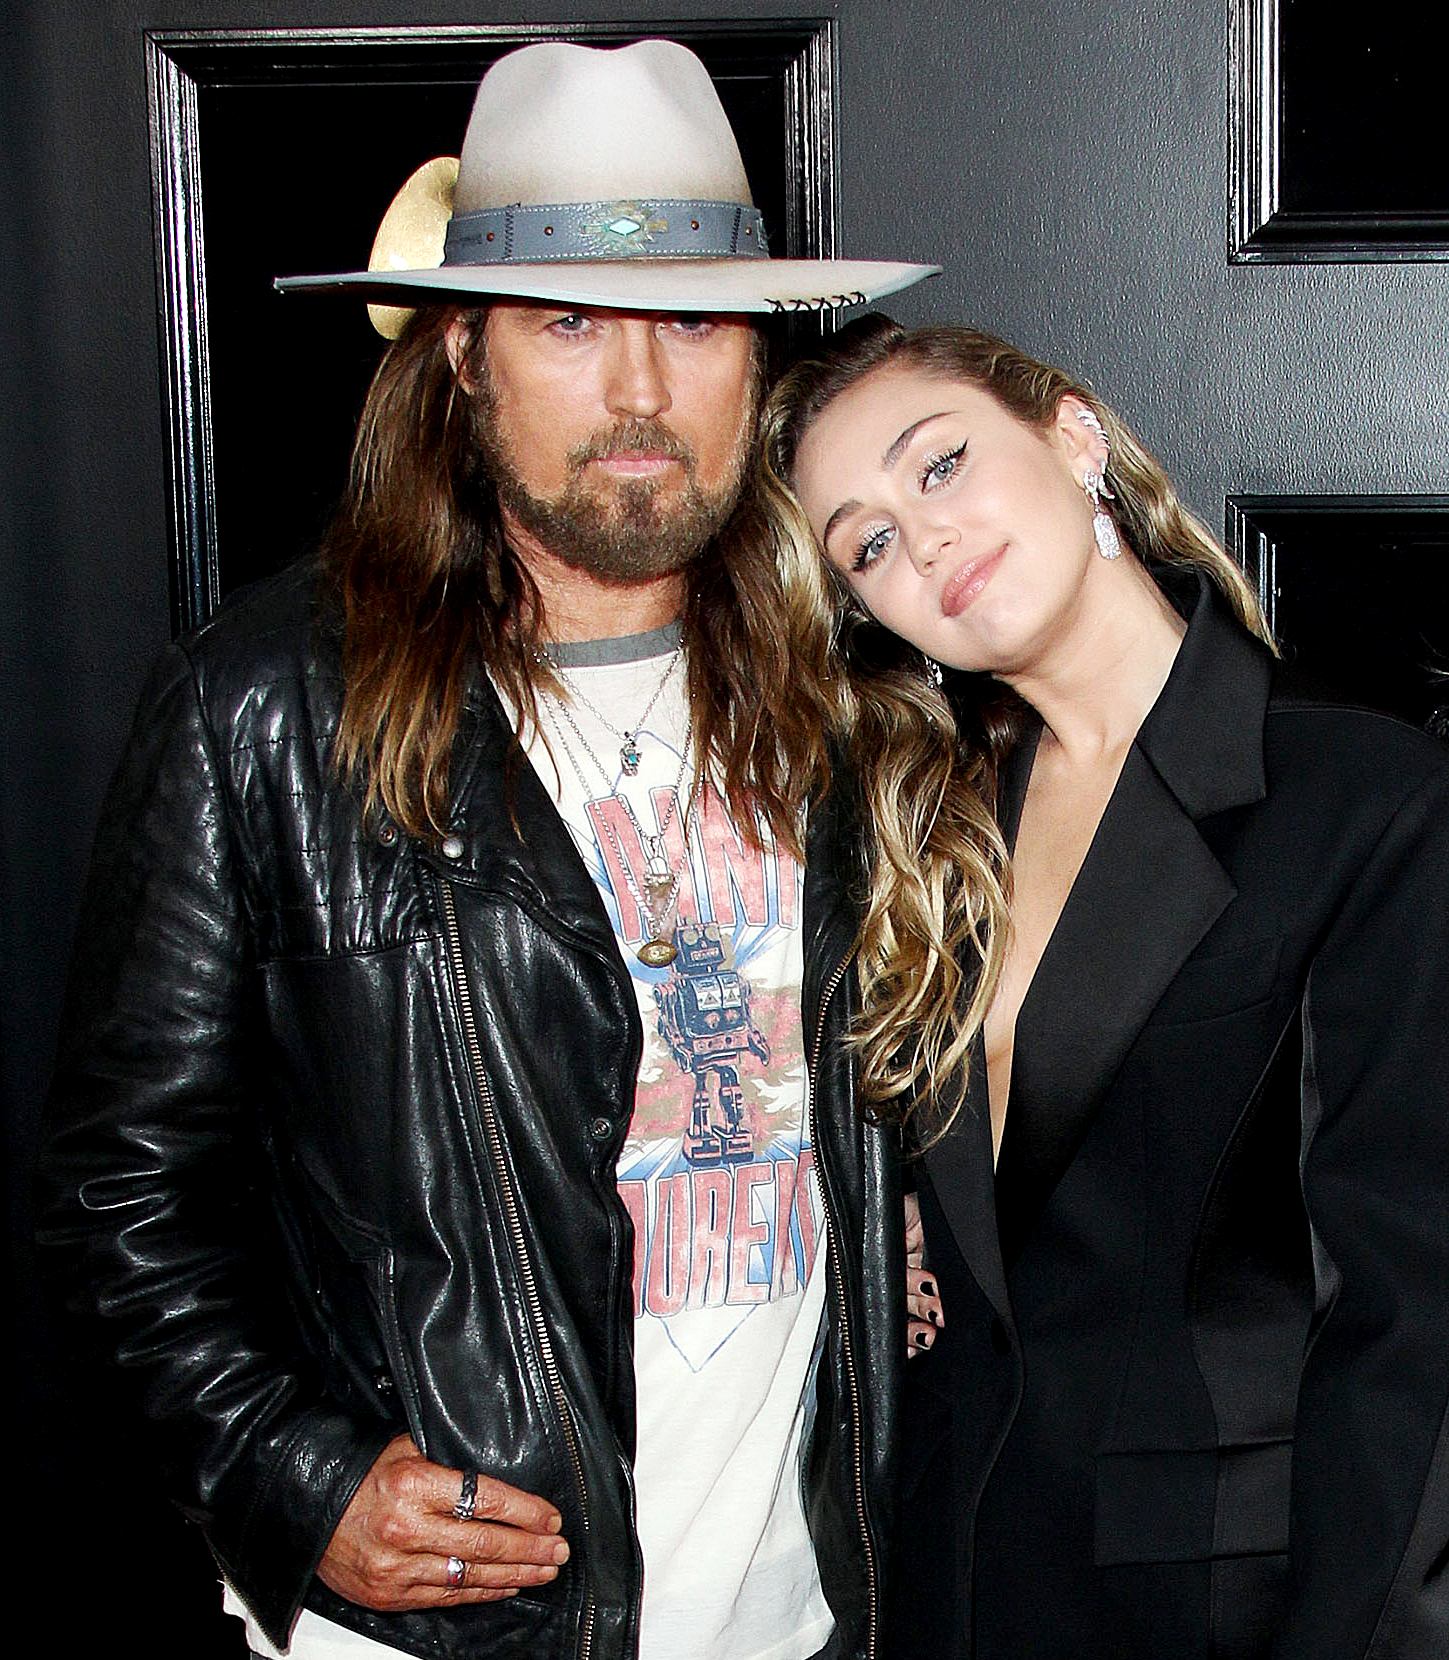 Billy-Ray-Cyrus-Teases-New-Music-From-Daughter-Miley